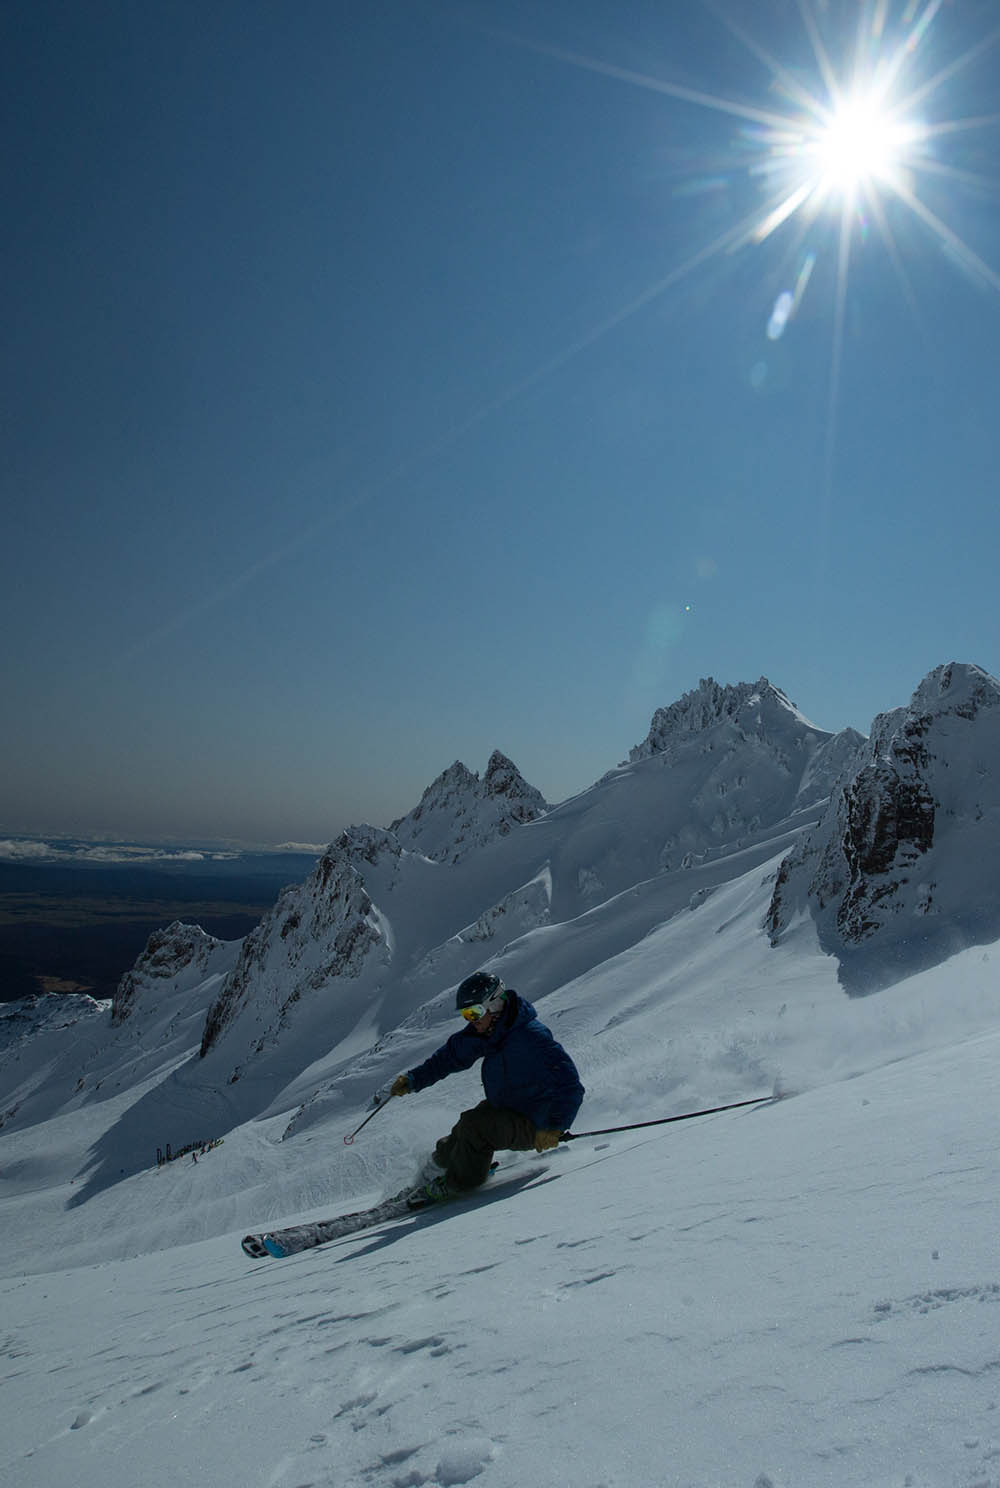 A skier skiing with the Pinnacles of Whakapapa Mt Ruapehu in the background